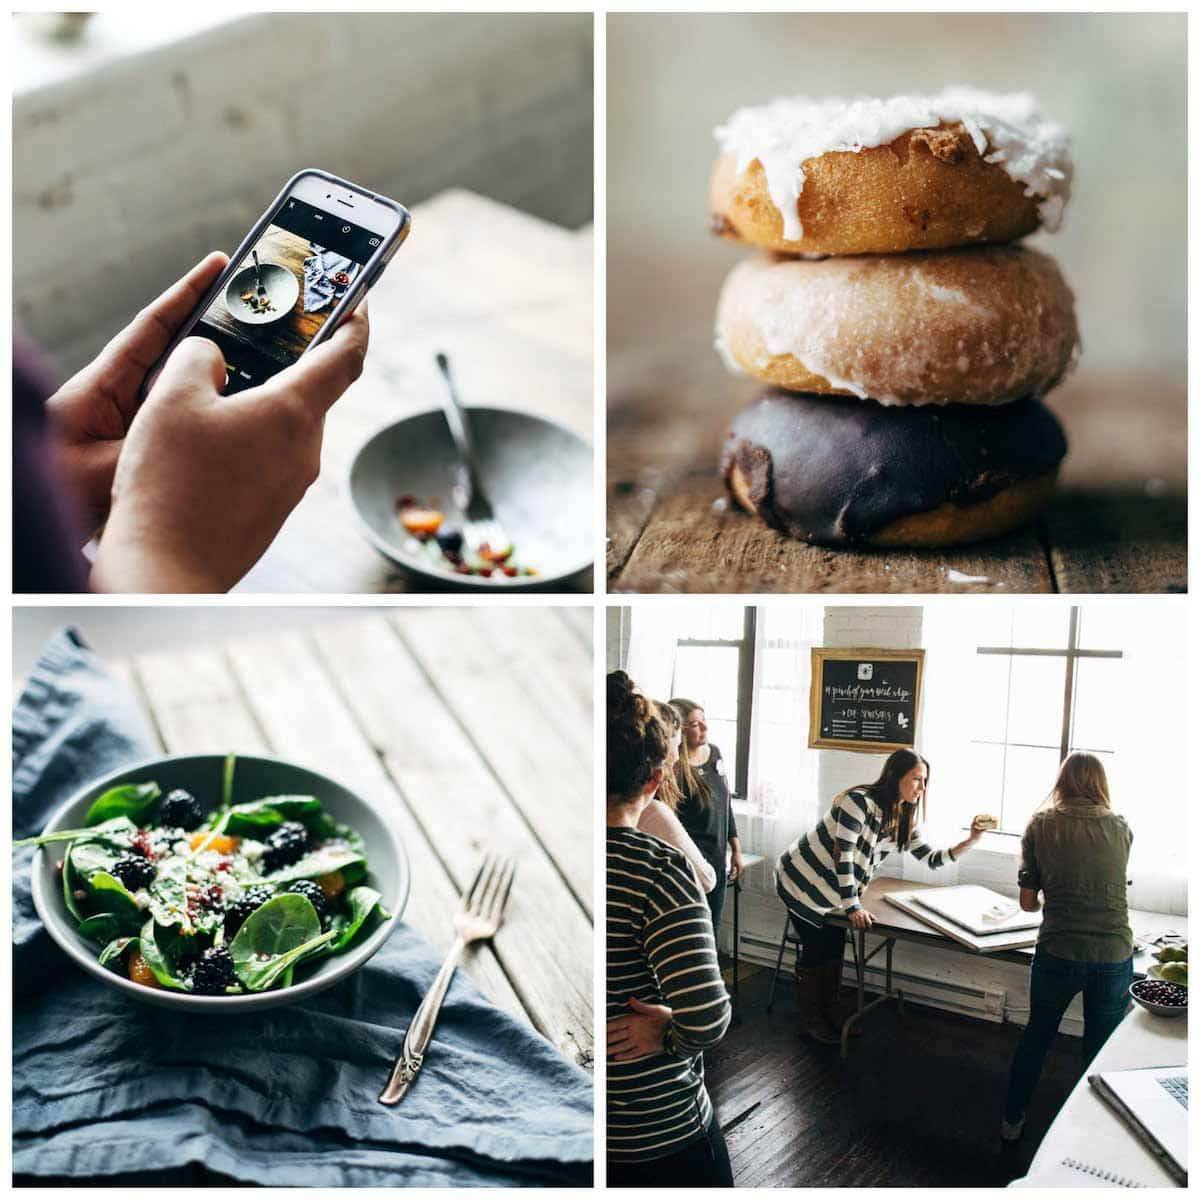 photos of food and an iphone and women taking photos